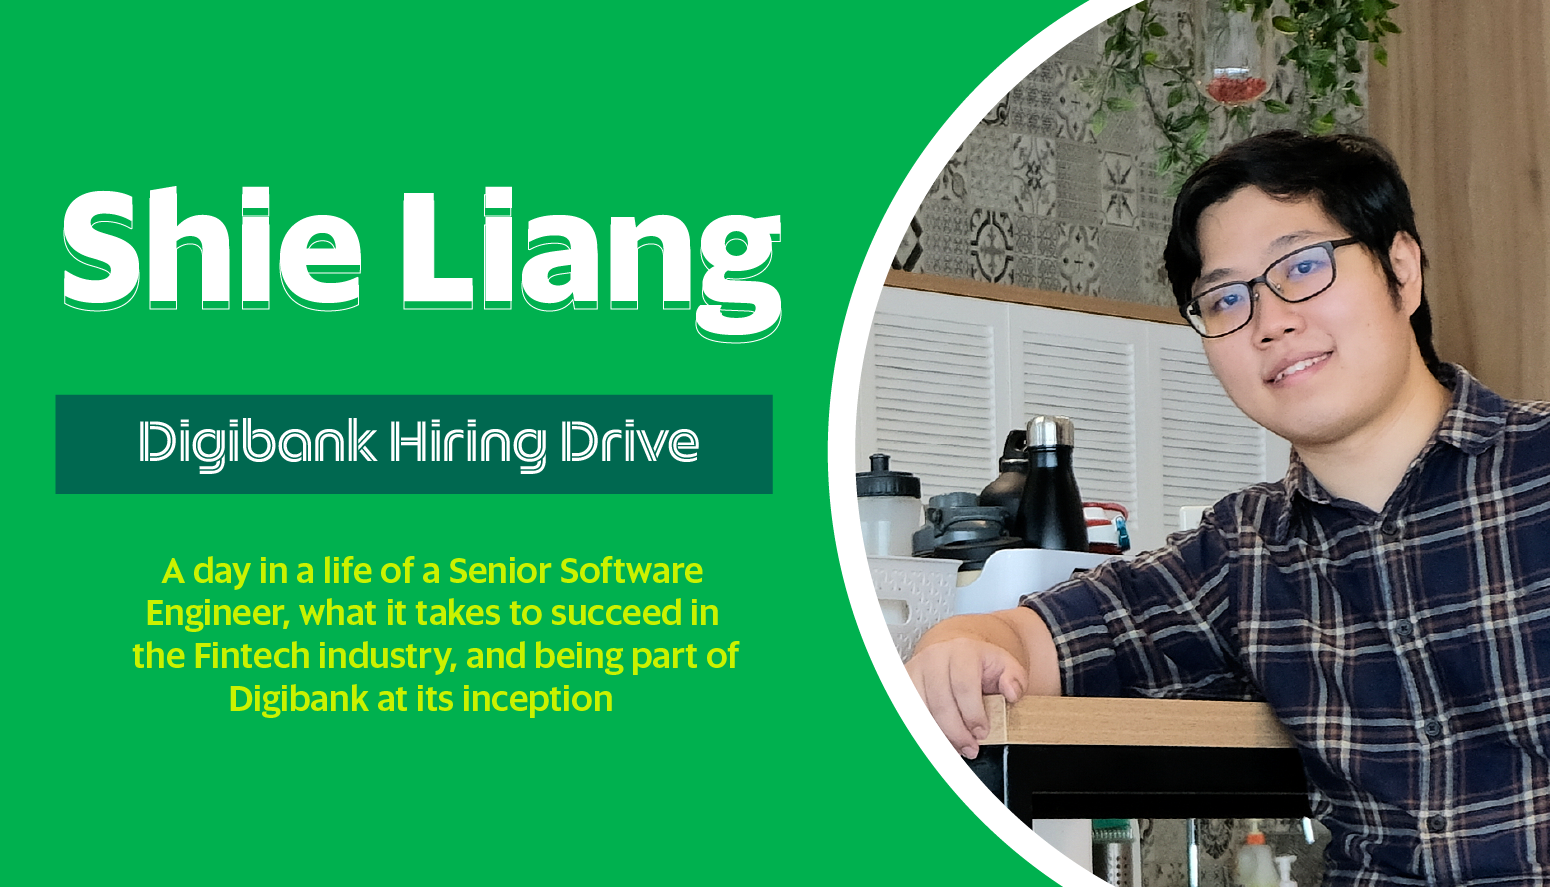 A day in the life of Digibank's Senior Software Engineer